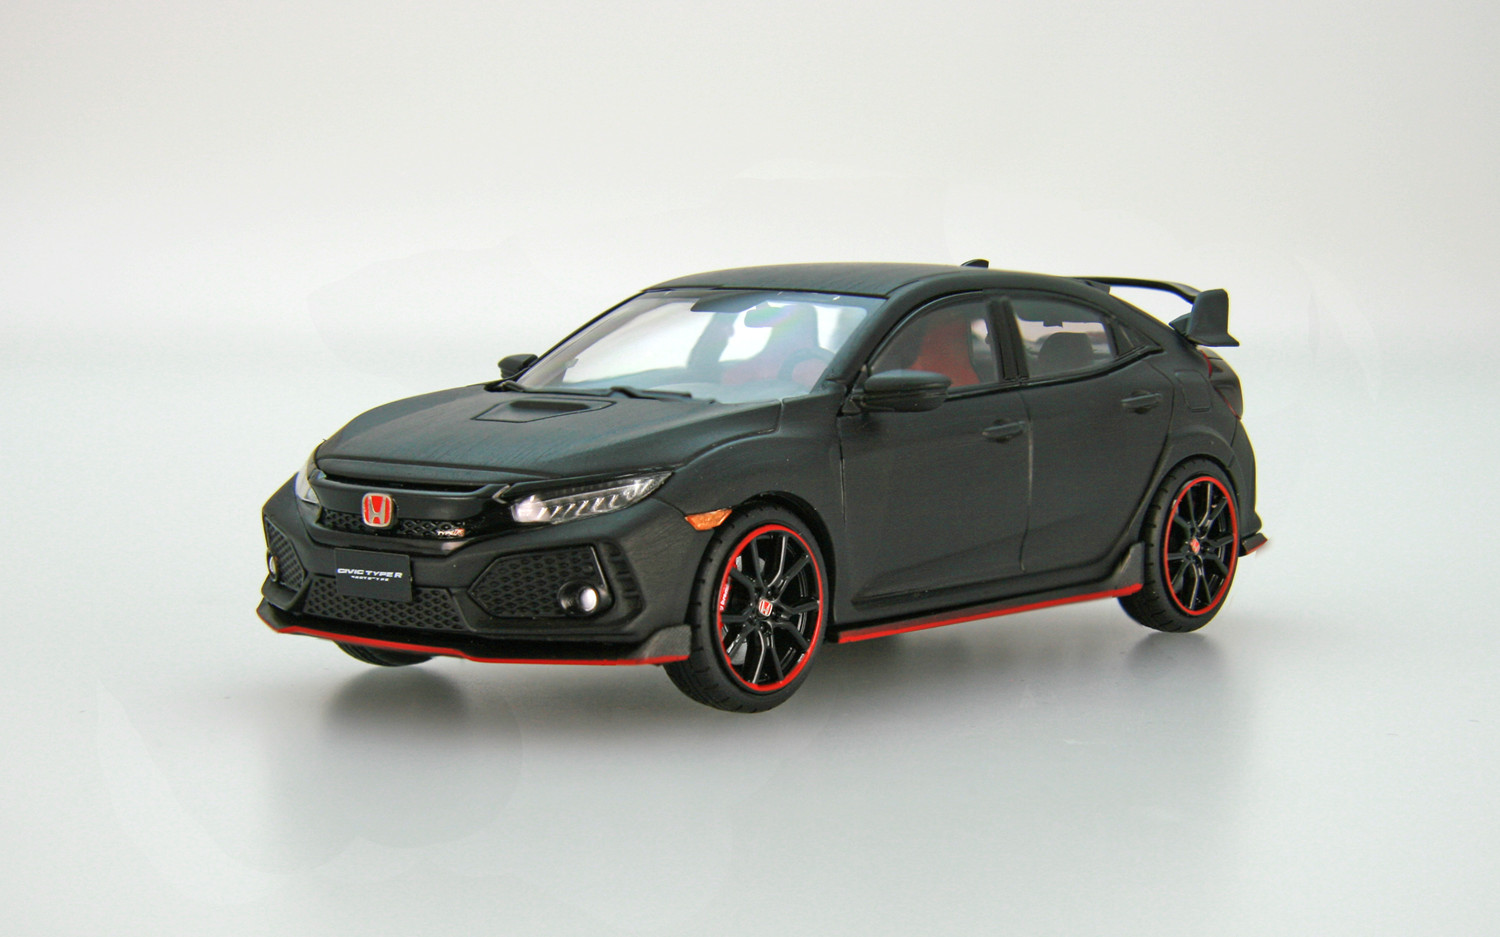 ☆EBBRO SHOP 限定パッケージ☆【45576】Honda CIVIC TYPE R 2017 Prototype